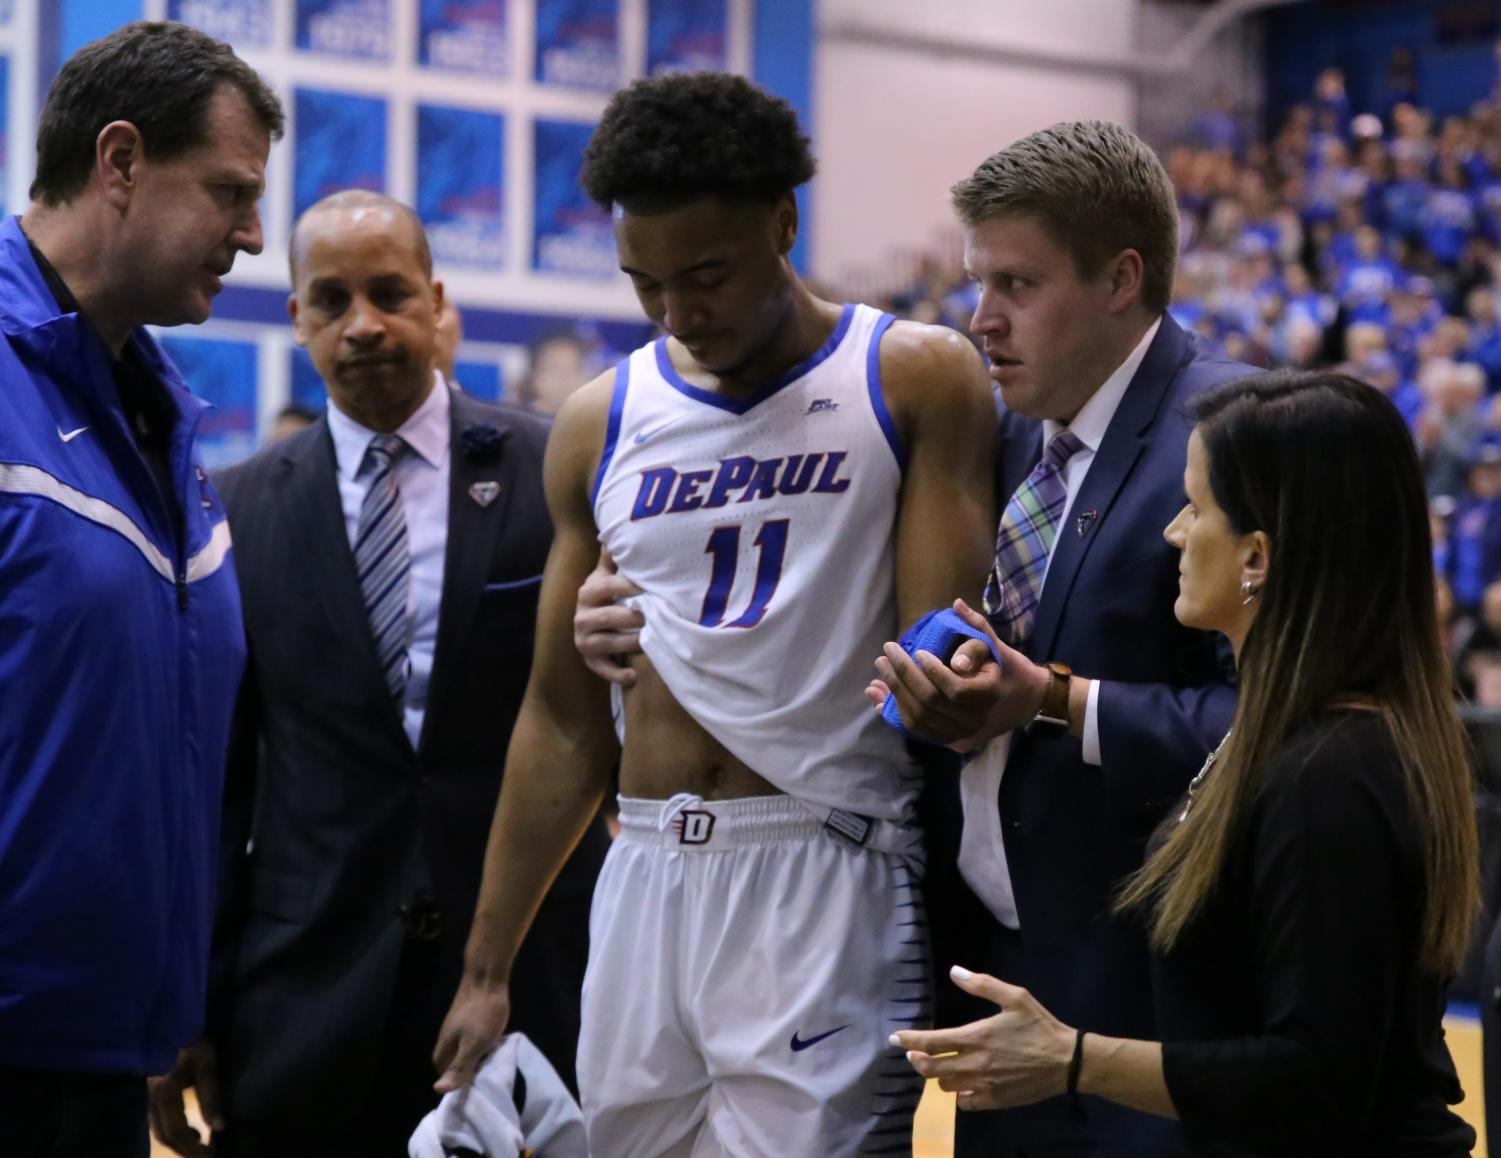 DePaul+senior+Eli+Cain+is+helped+off+the+court+after+injuring+his+hand+during+the+first+half+of+game+two+of+the+CBI+championship+at+McGrath-Phillips+Arena+Wednesday+night.+Alexa+Sandler+%7C+The+DePaulia